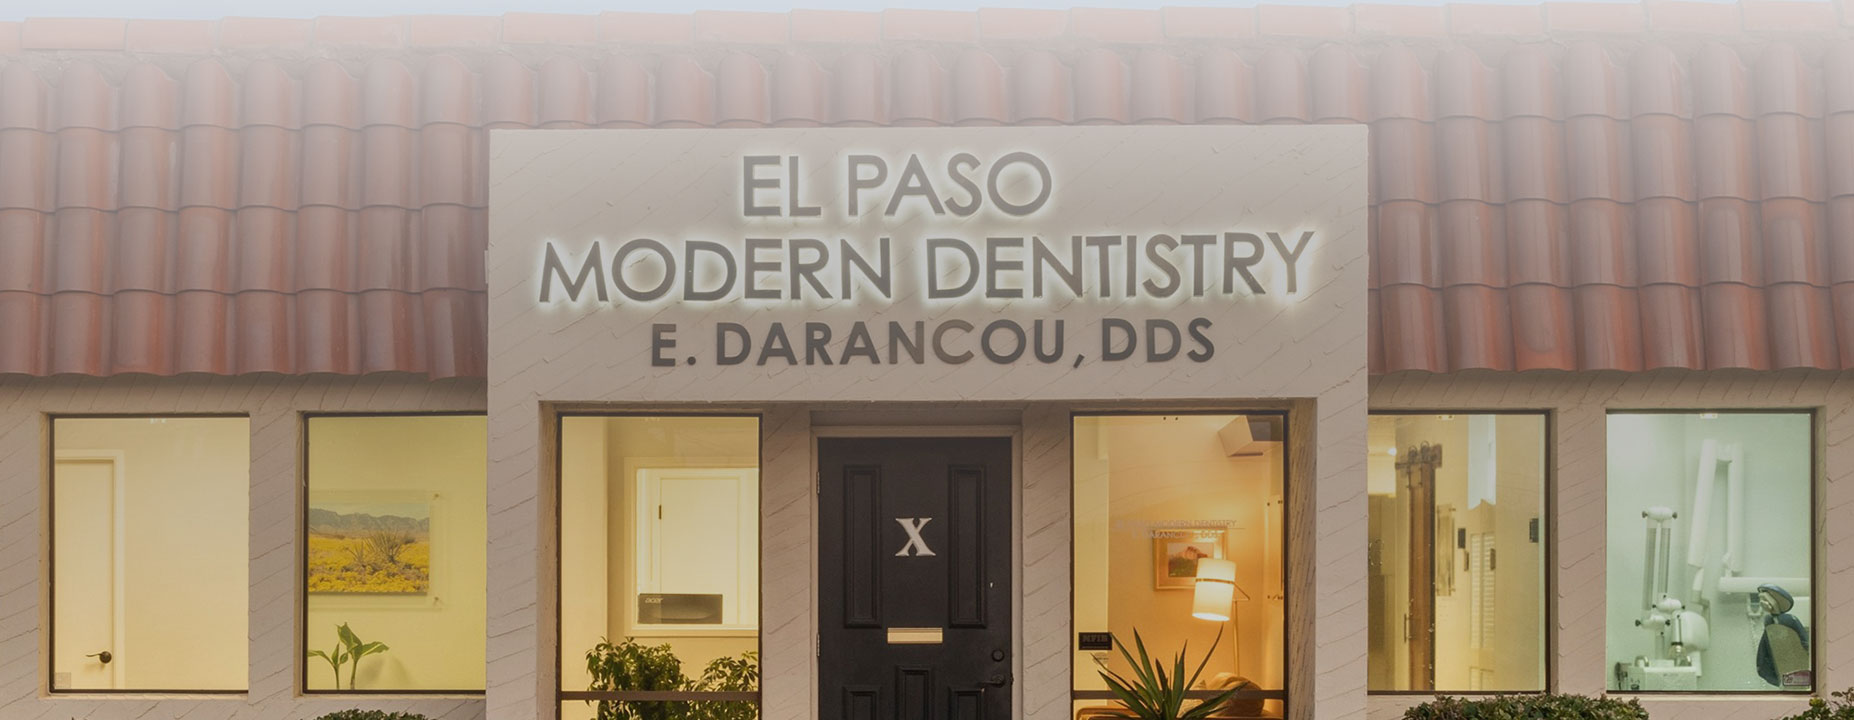 Front view of El paso modern dentistry